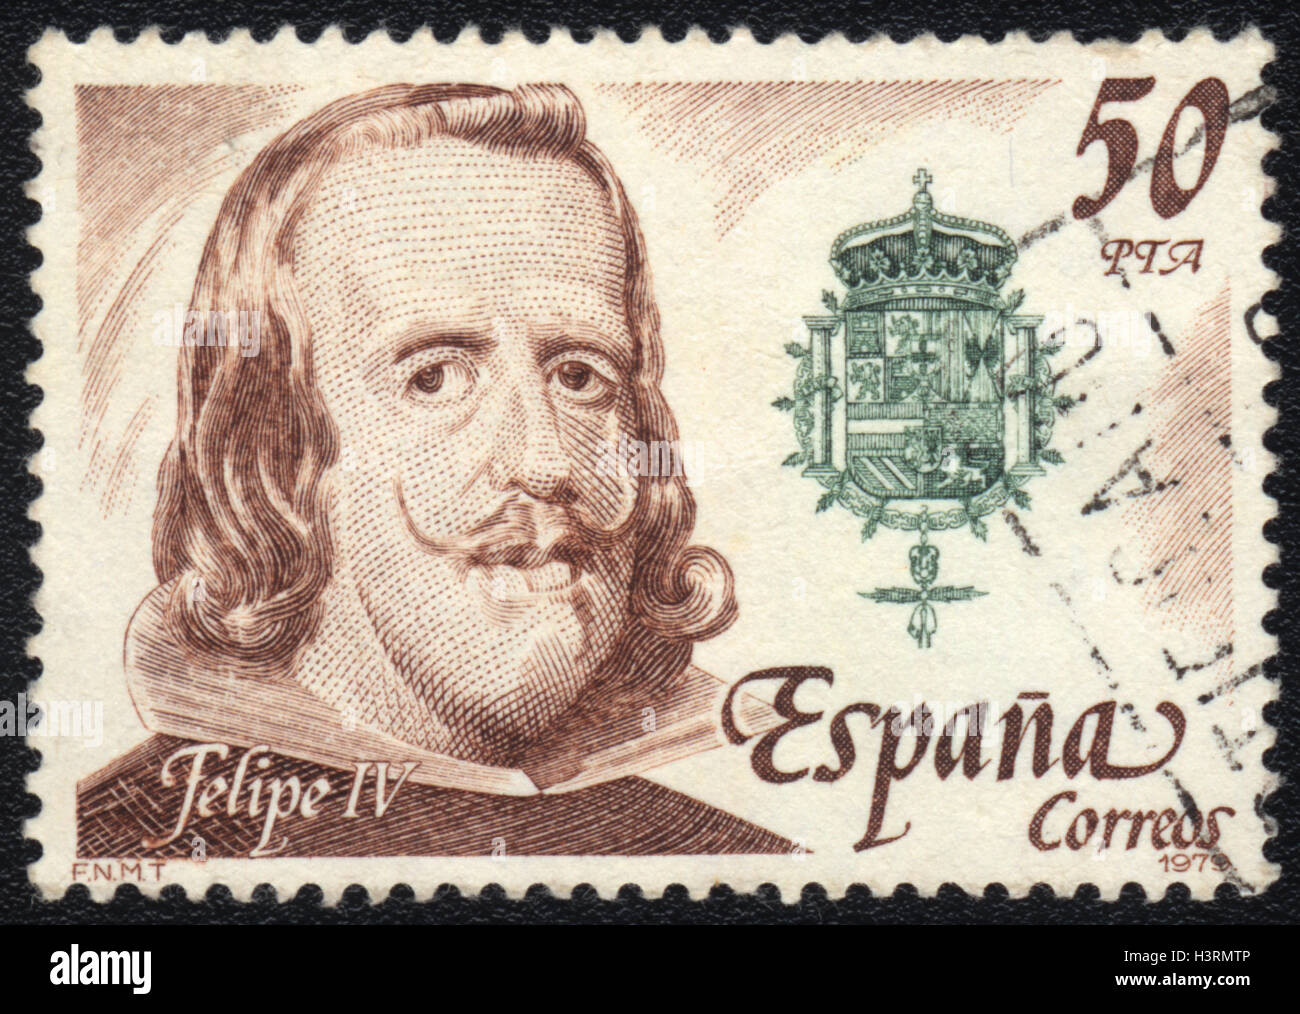 A Postage Stamp Printed In Spain Shows Portrait Of Philip IV 1979